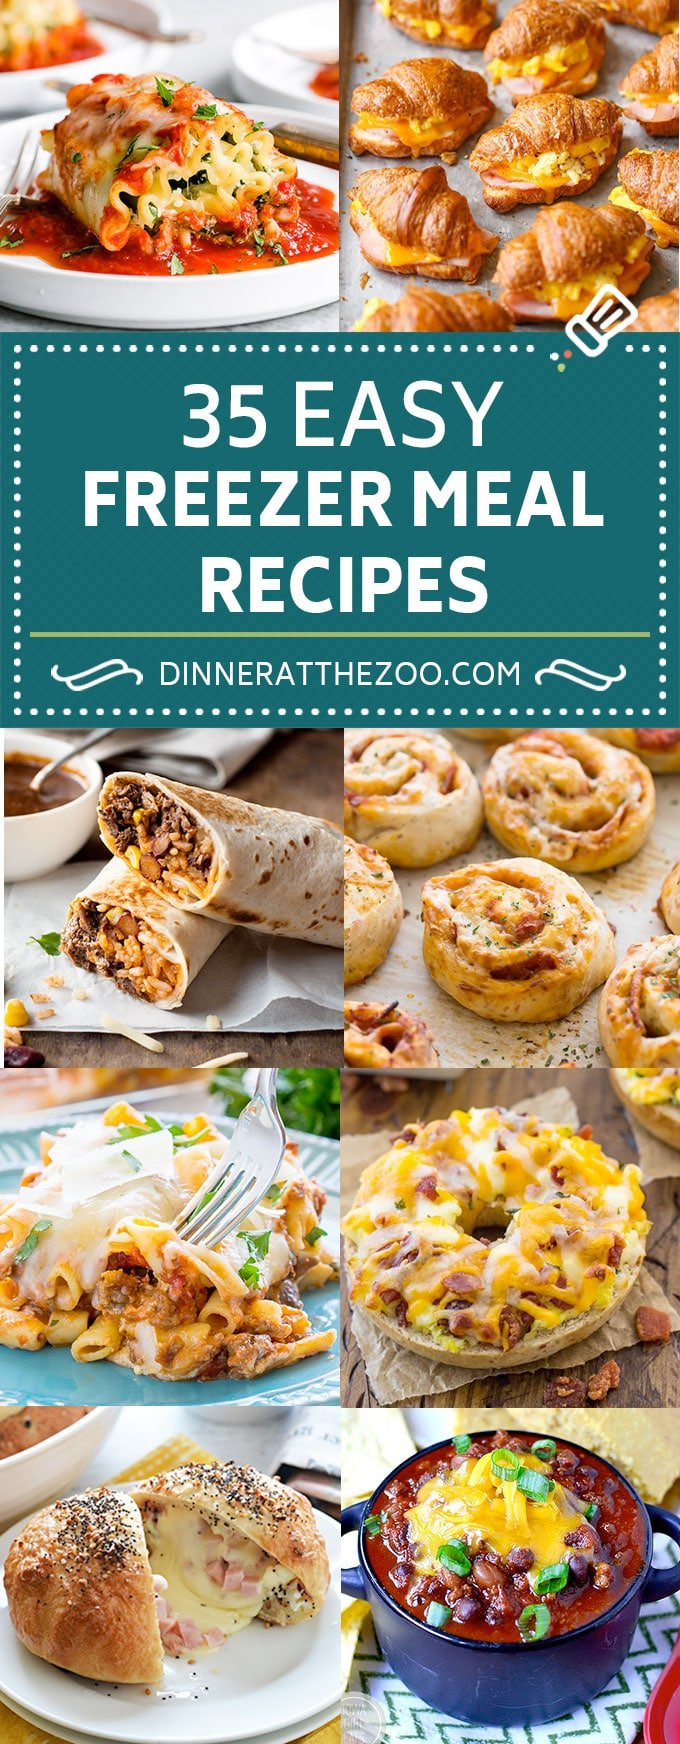 freezer recipes easy and convenient recipes to save time money and your health the easy recipe book 43